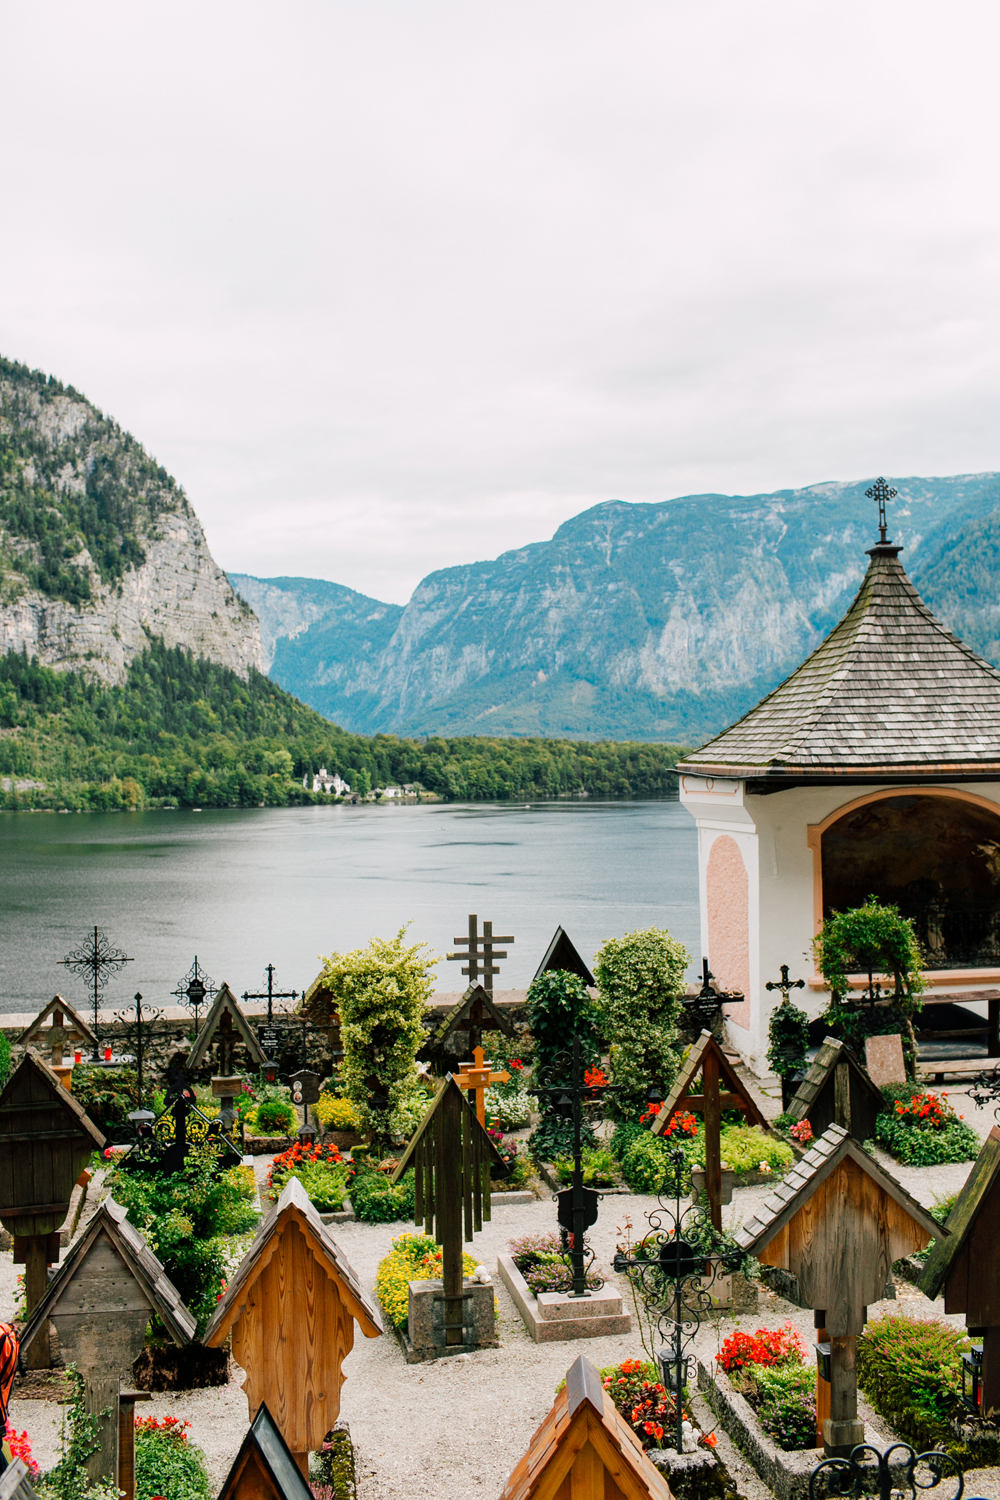 022-europe-photographer-katheryn-moran-hallstatt-austria-national-geographics.jpg